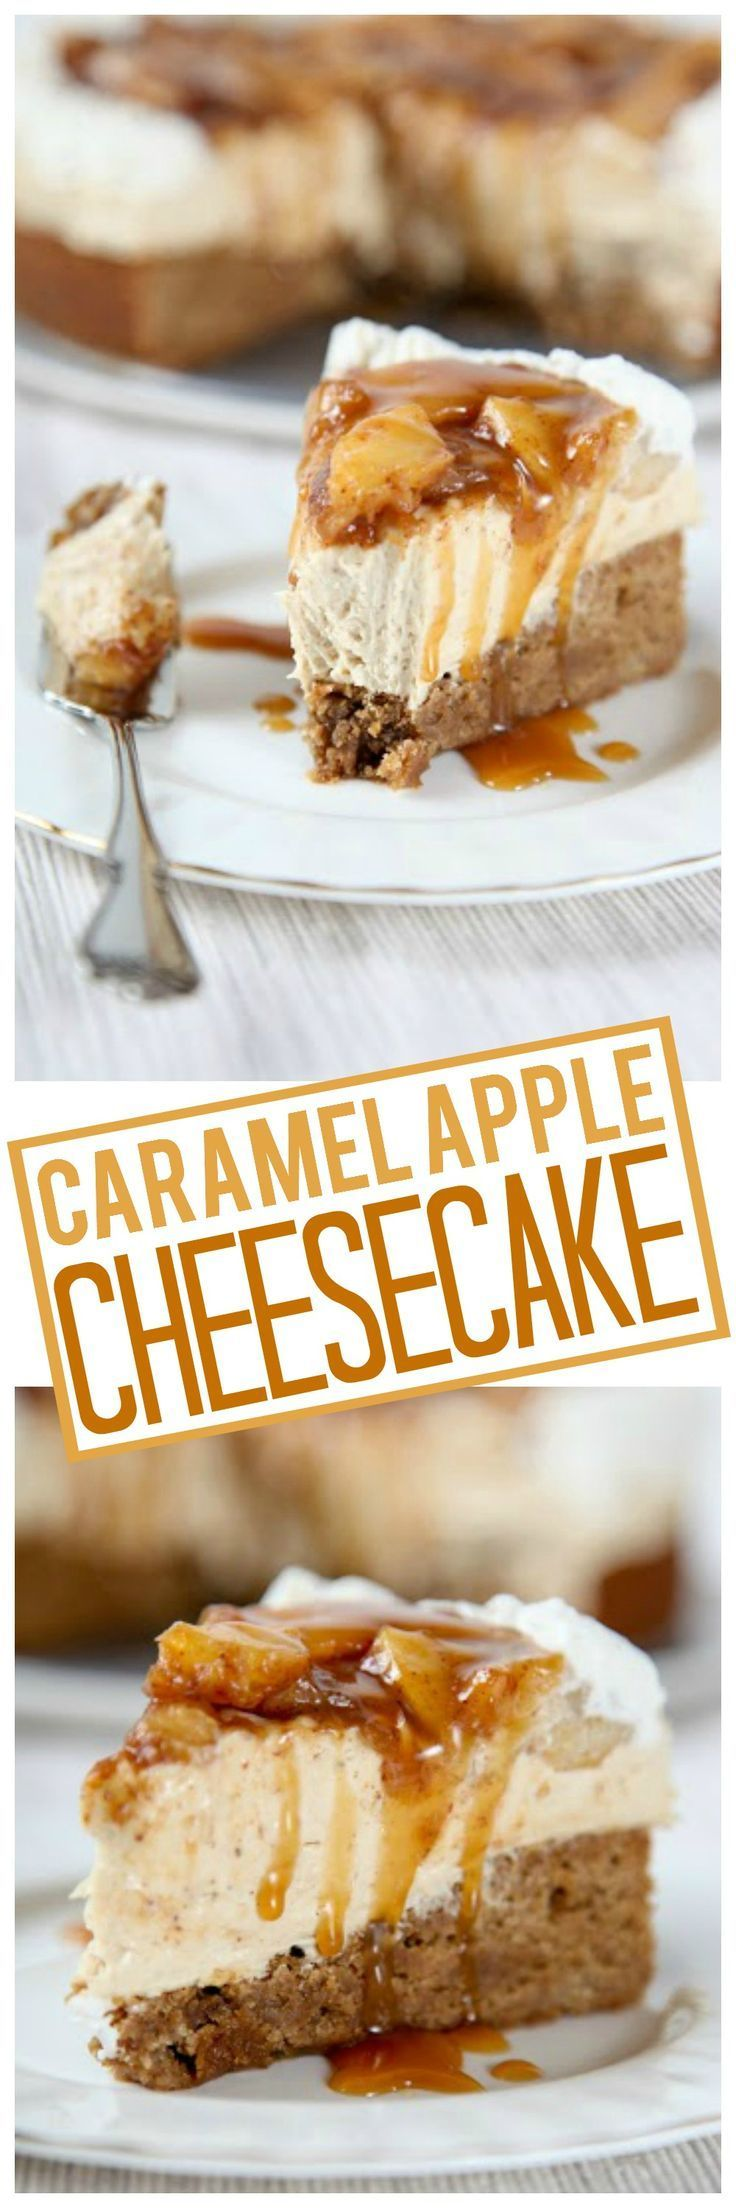 Creamy caramel cheesecake inside a Cinnamon blondie crust topped with cinnamon apples and a decadent caramel drizzle.